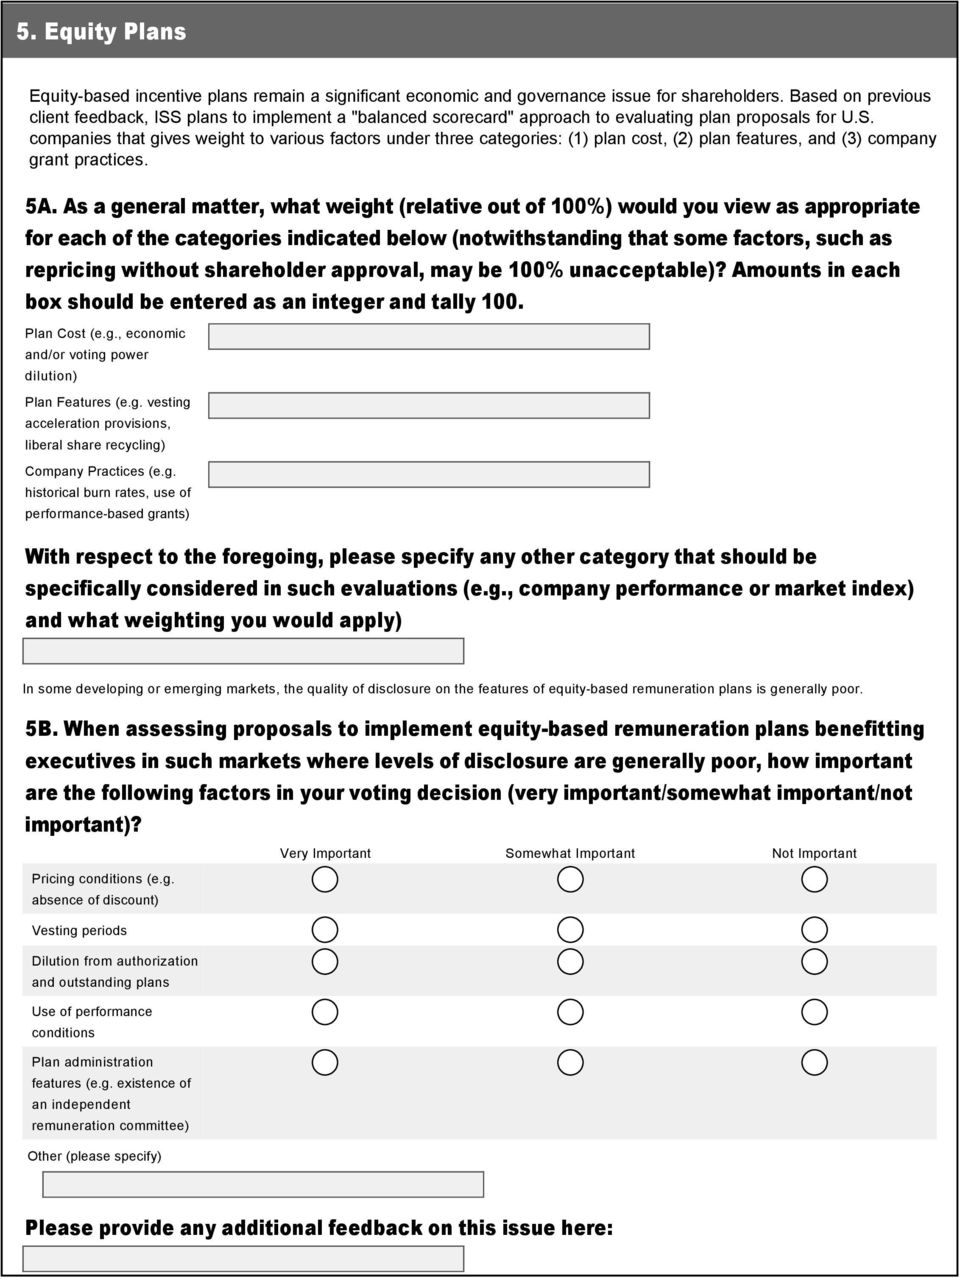 5A. As a general matter, what weight (relative out of 100%) would you view as appropriate for each of the categories indicated below (notwithstanding that some factors, such as repricing without